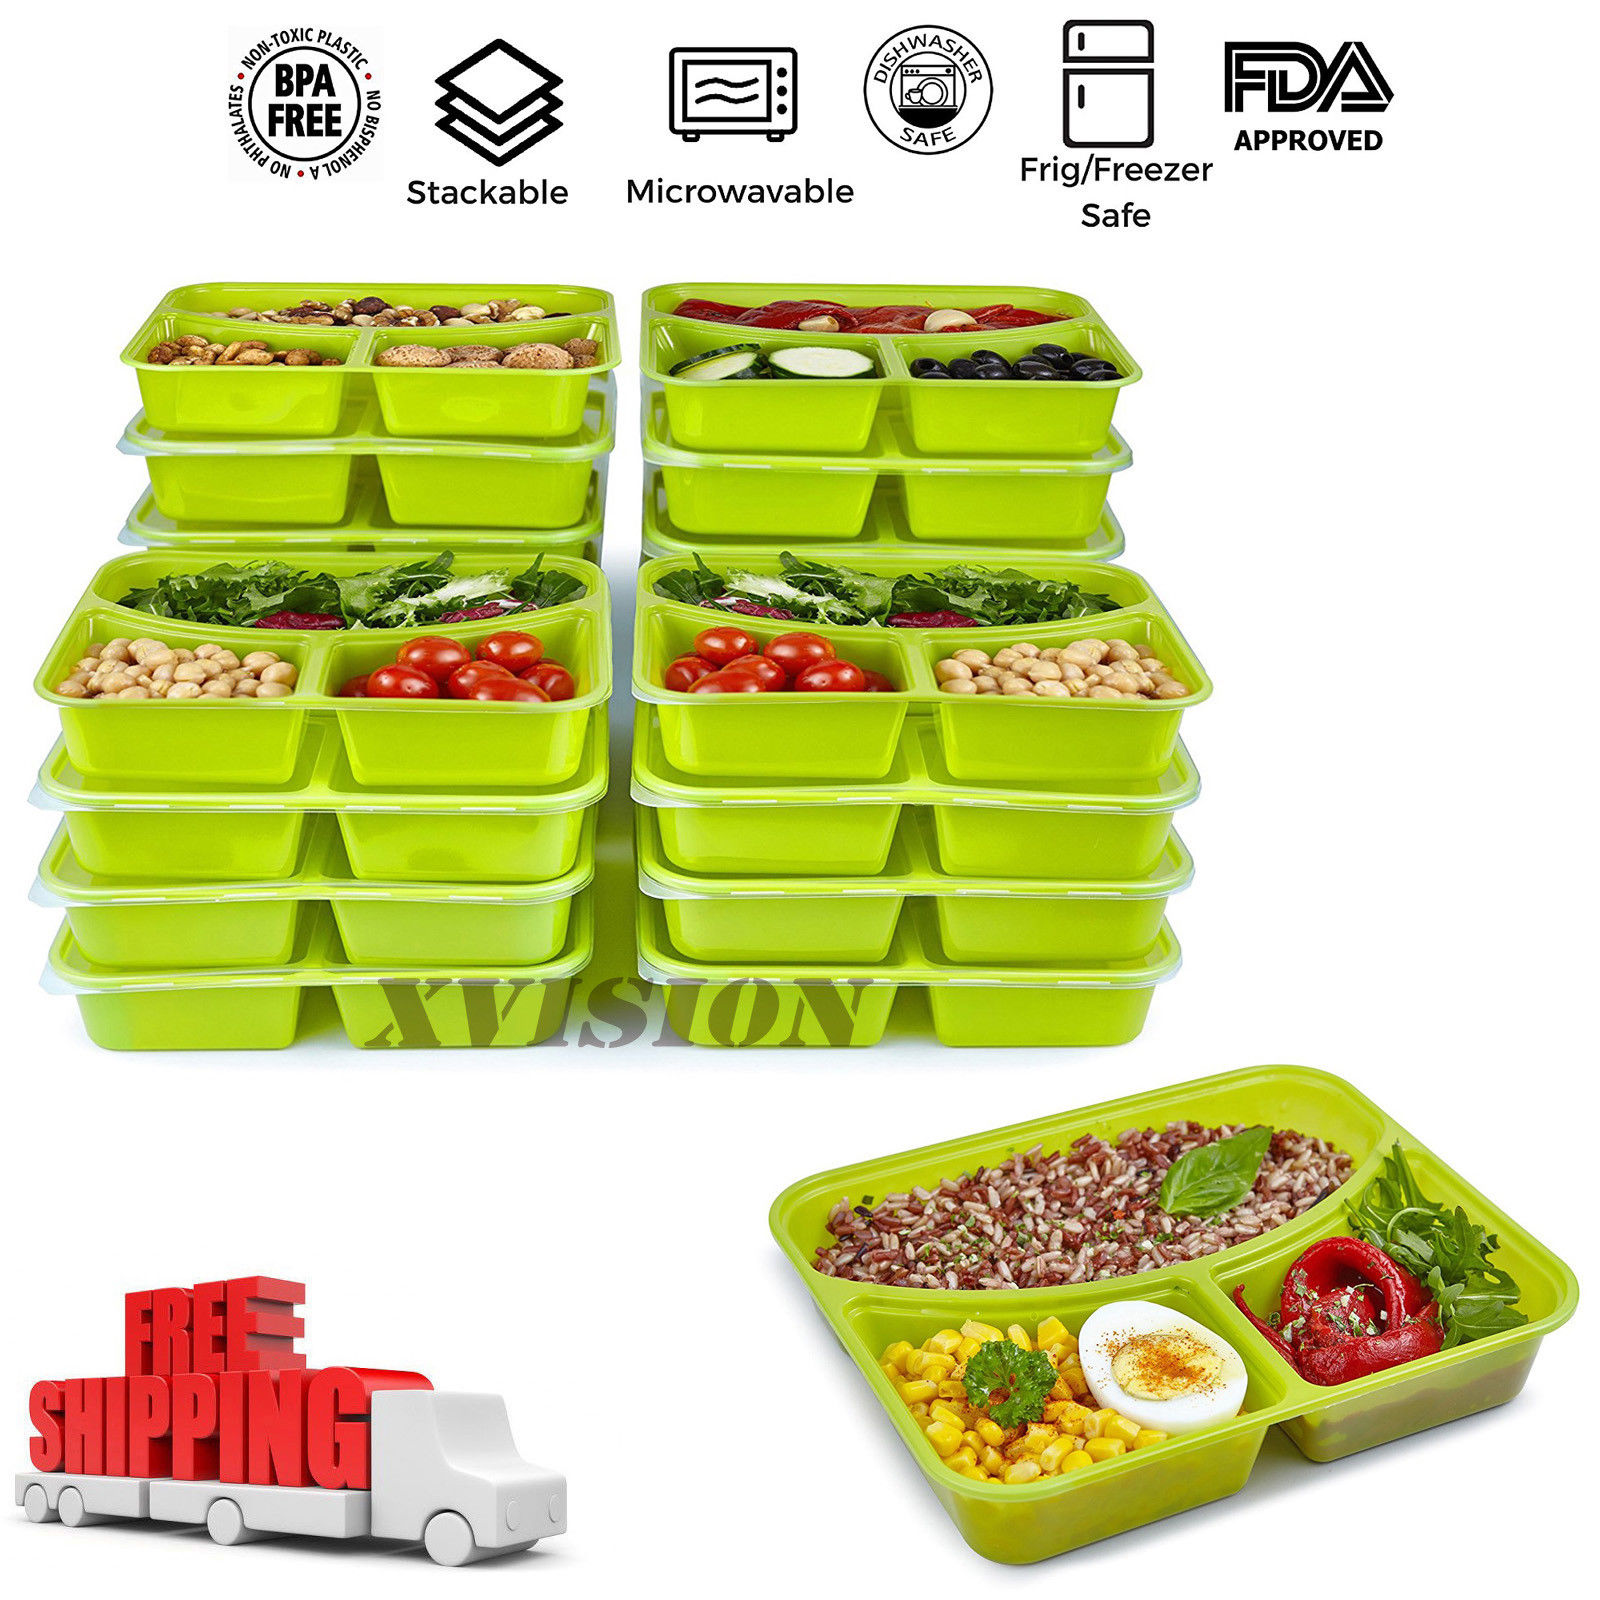 20 Meal Prep Containers 3 Compartment Food Storage Plastic Reusable Microwavable 1